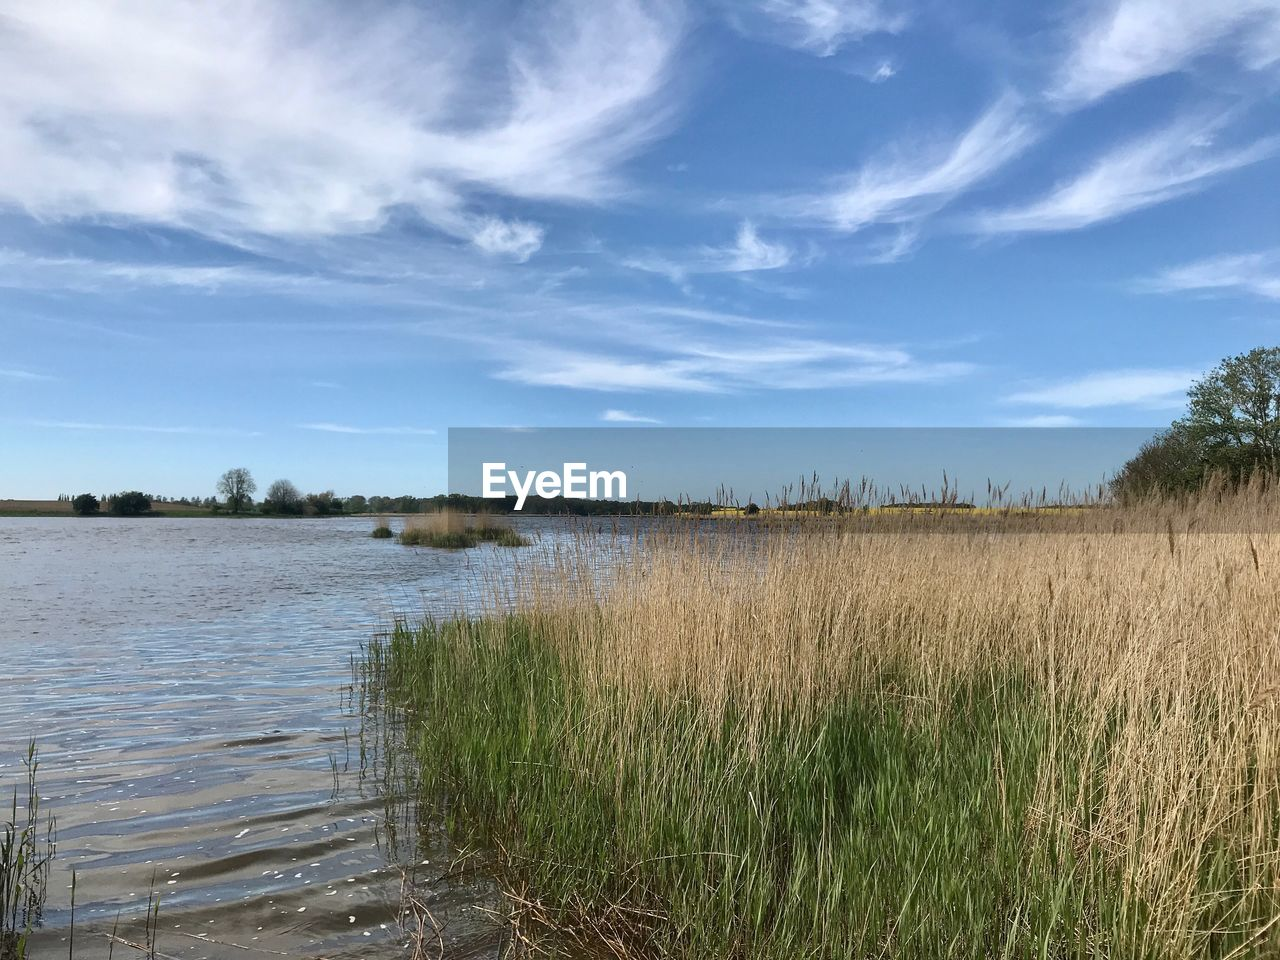 sky, plant, water, cloud - sky, tranquility, tranquil scene, scenics - nature, beauty in nature, grass, nature, land, no people, growth, environment, day, landscape, non-urban scene, field, lake, outdoors, timothy grass, marram grass